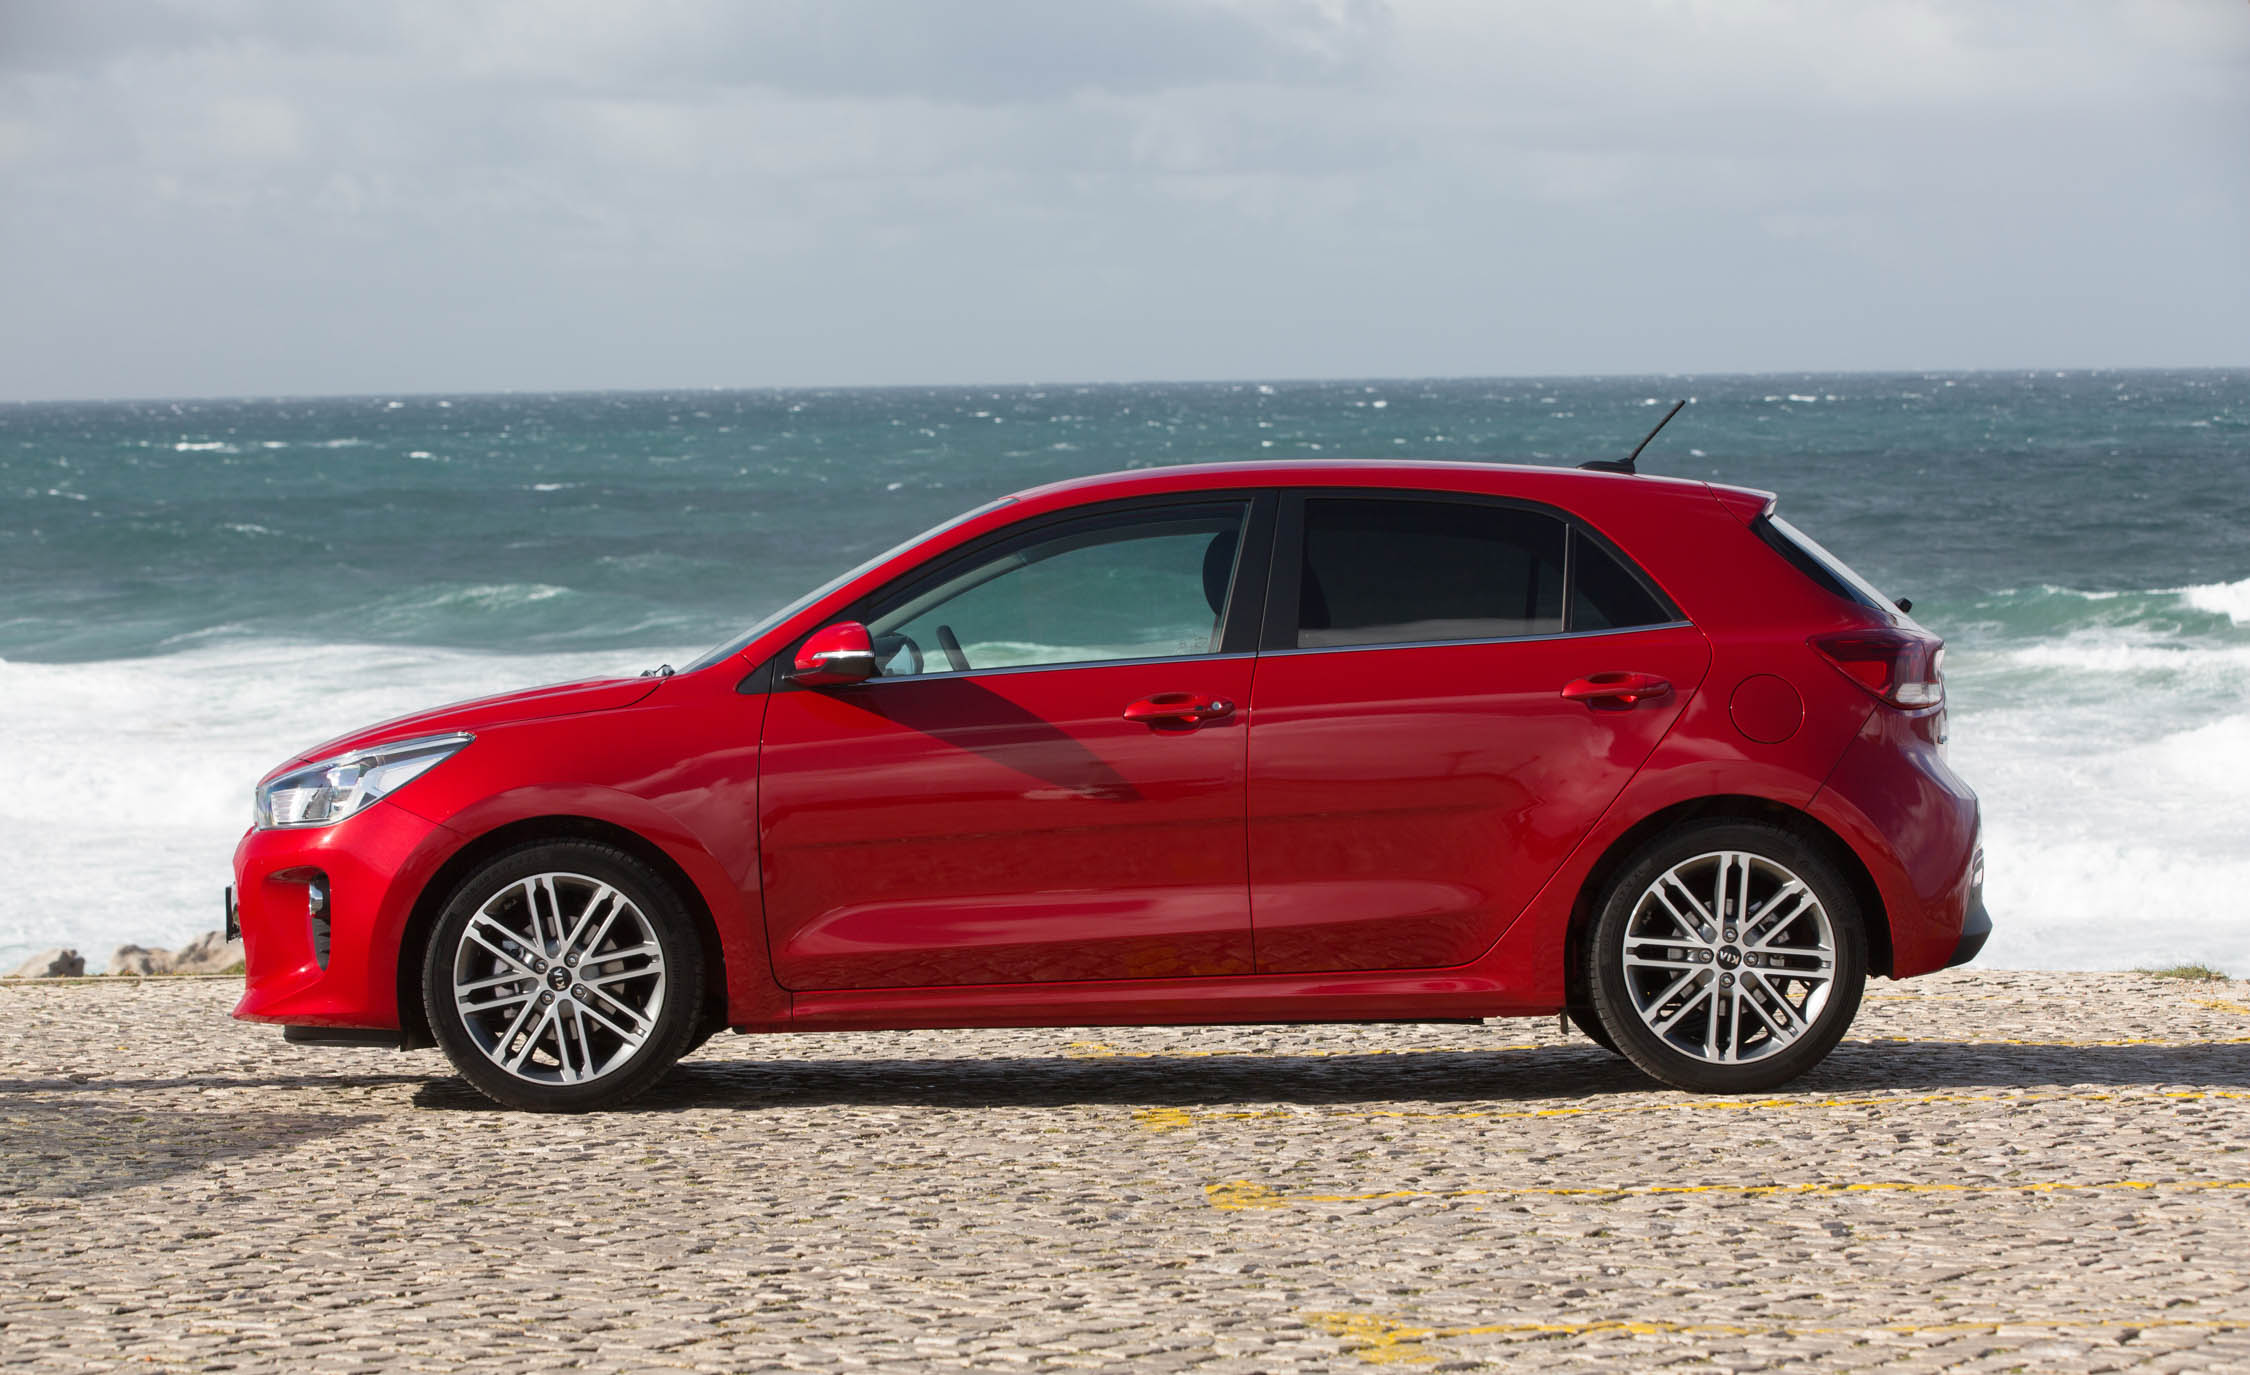 2018 Kia Rio Hatchback Red Exterior Side (View 10 of 49)